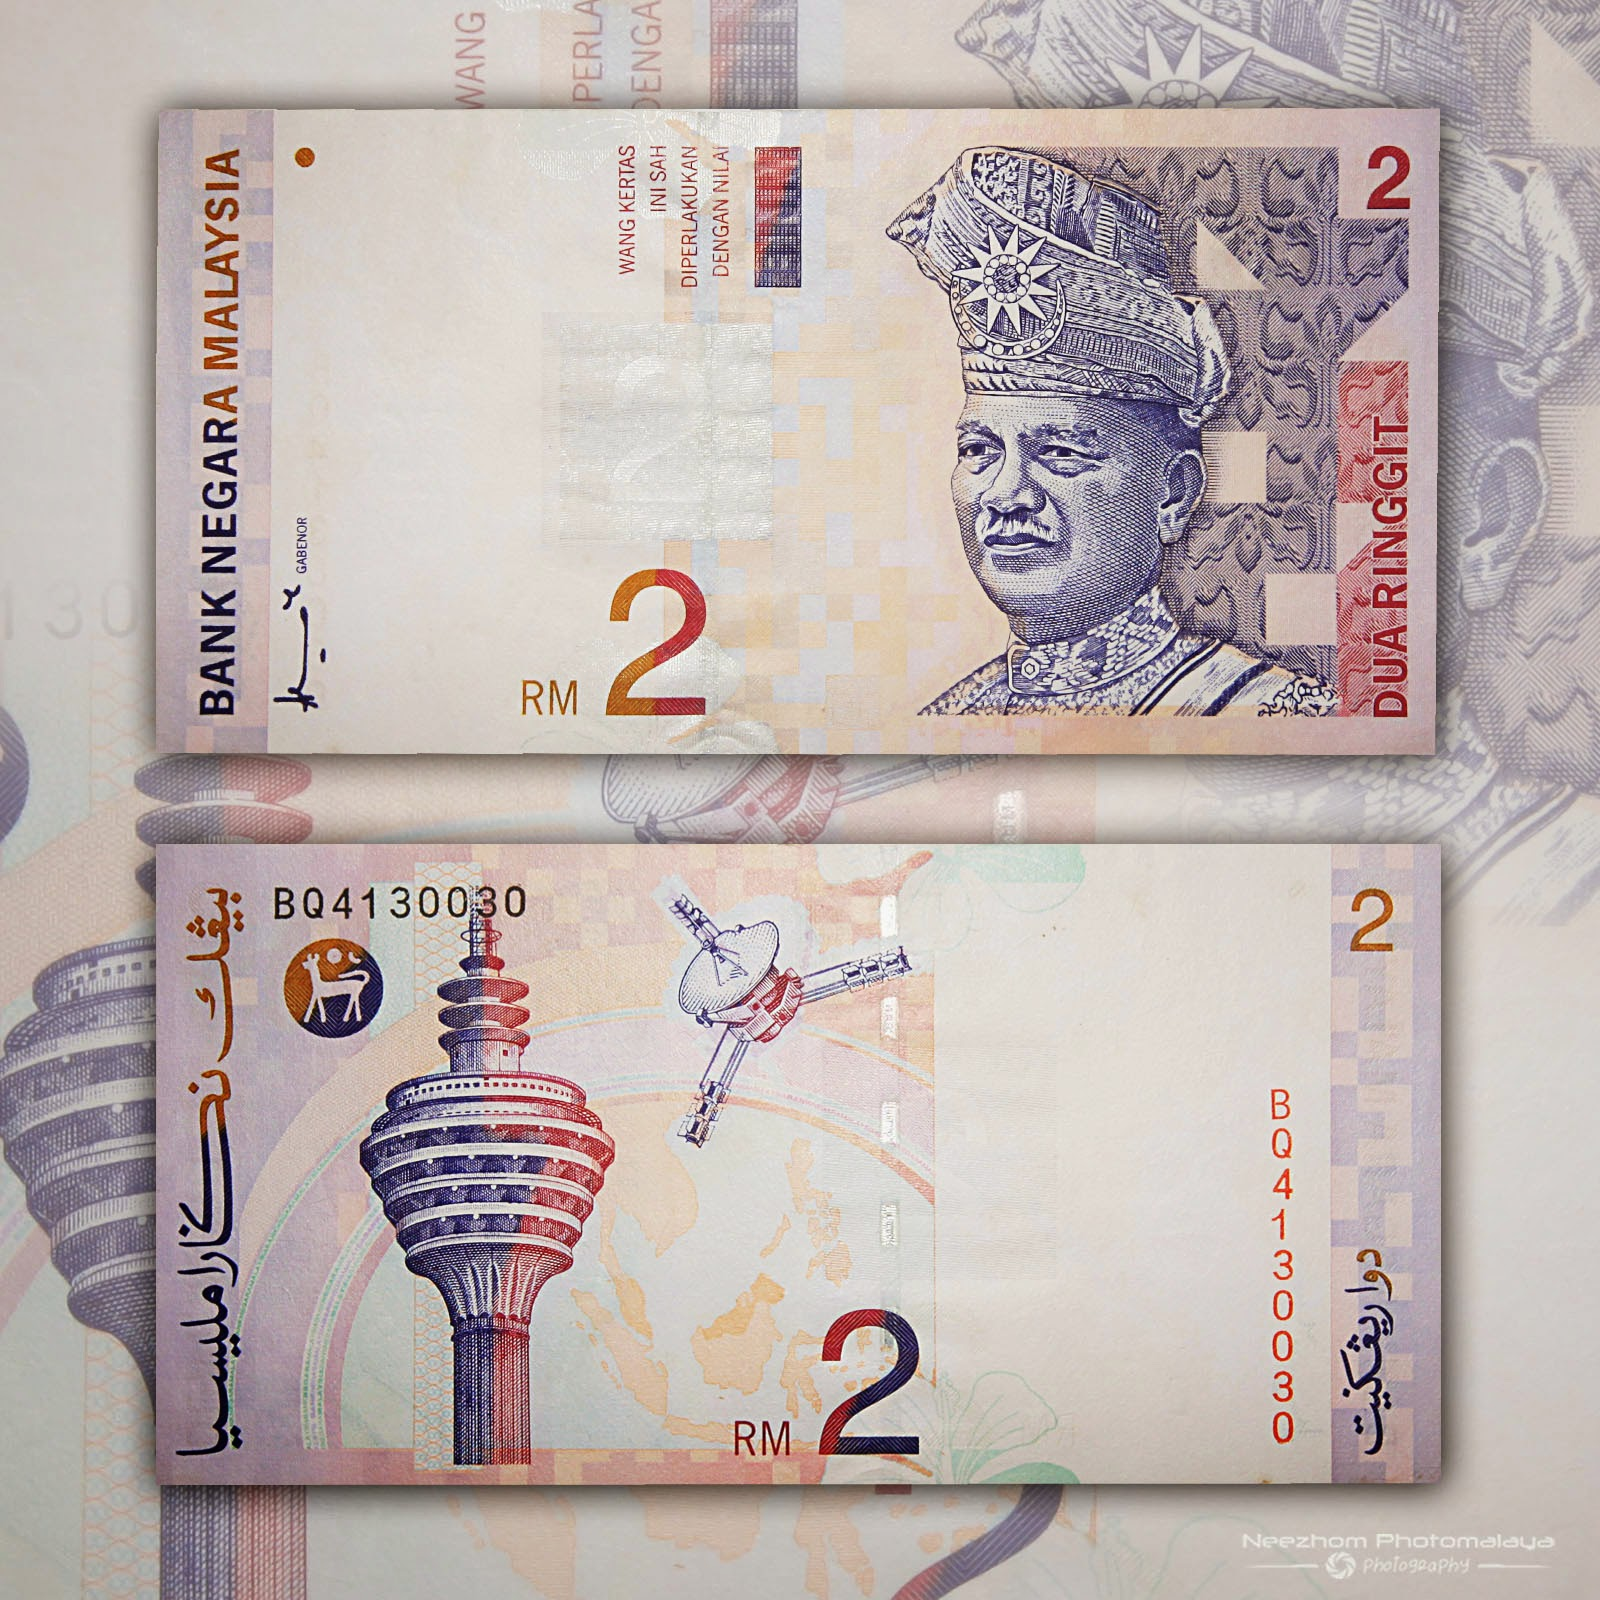 Malaysia 2 Ringgit 3rd series banknote